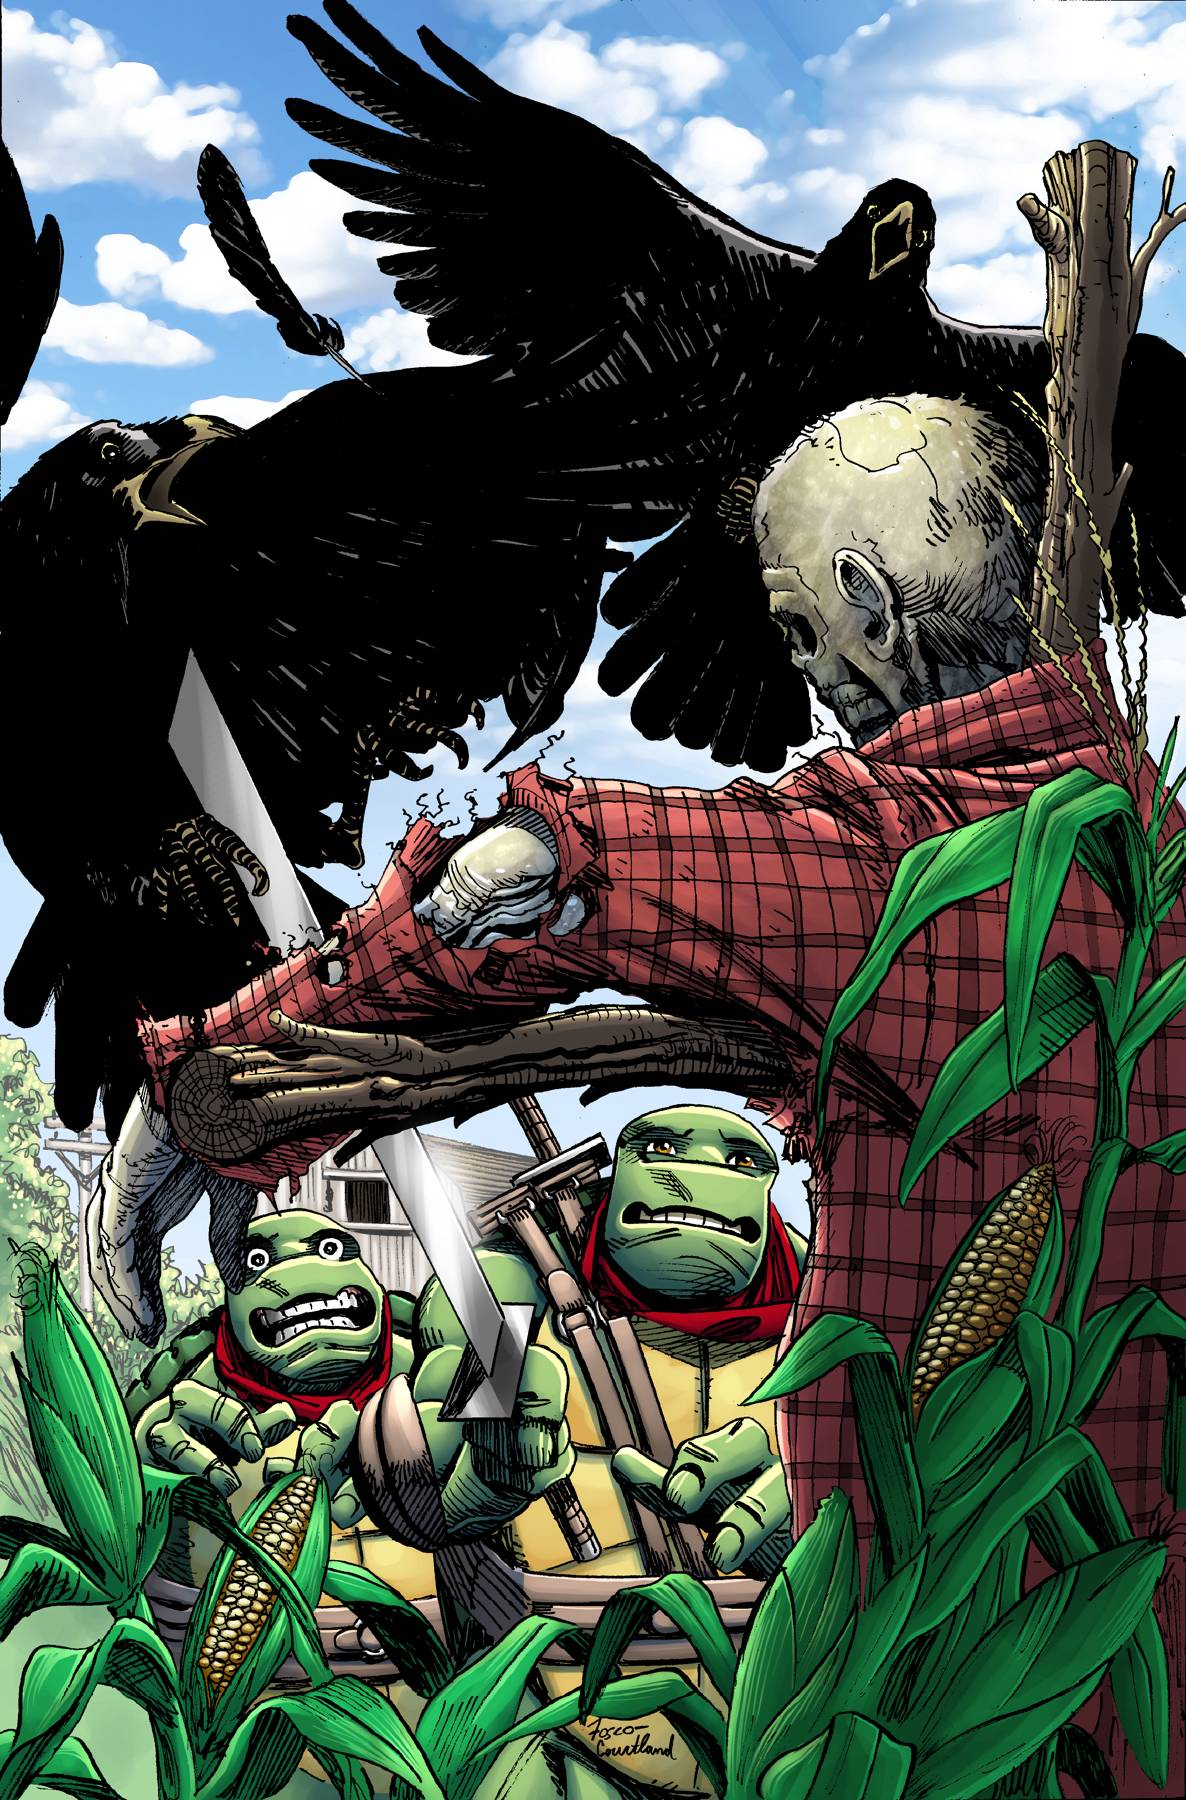 TMNT URBAN LEGENDS 12 CVR A FOSCO.jpg